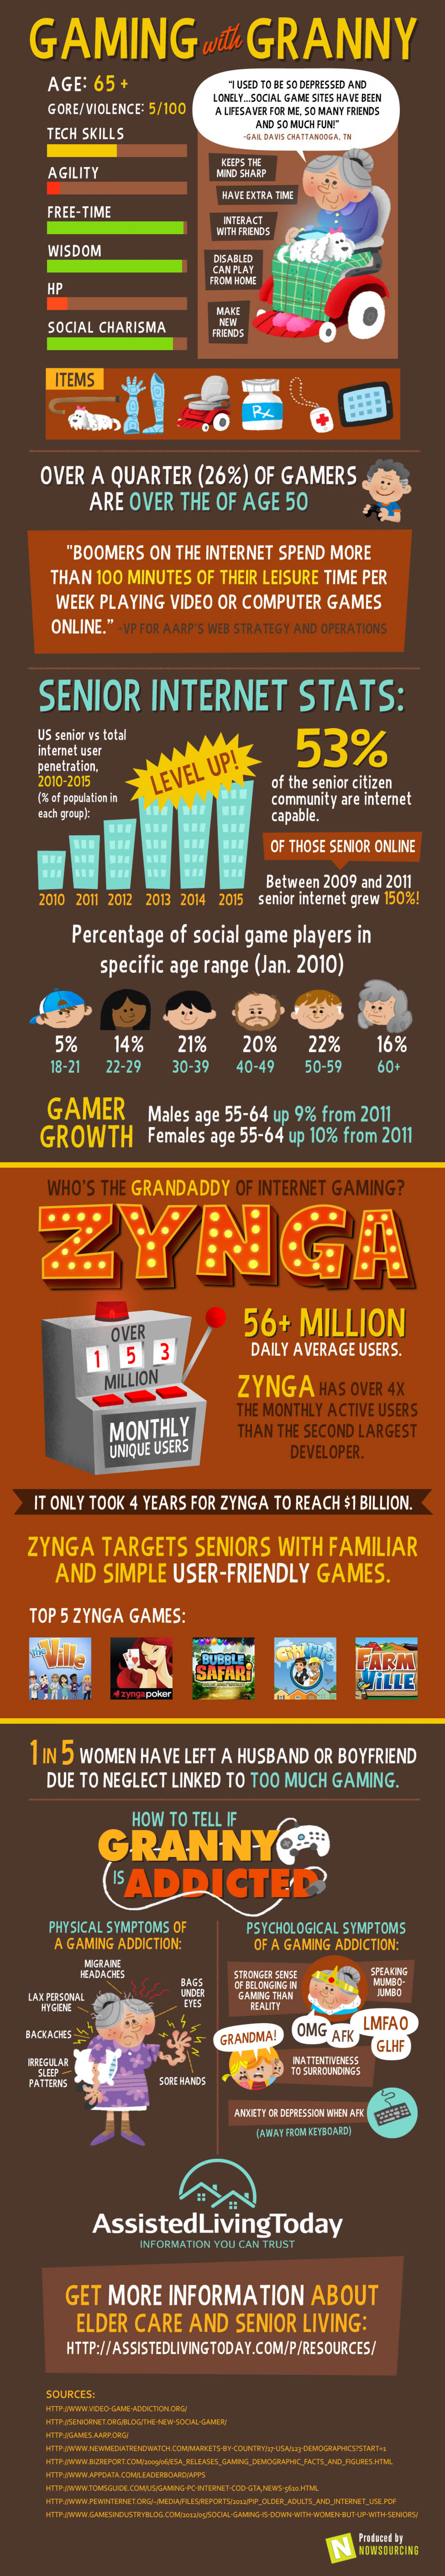 Gaming With Granny Infographic